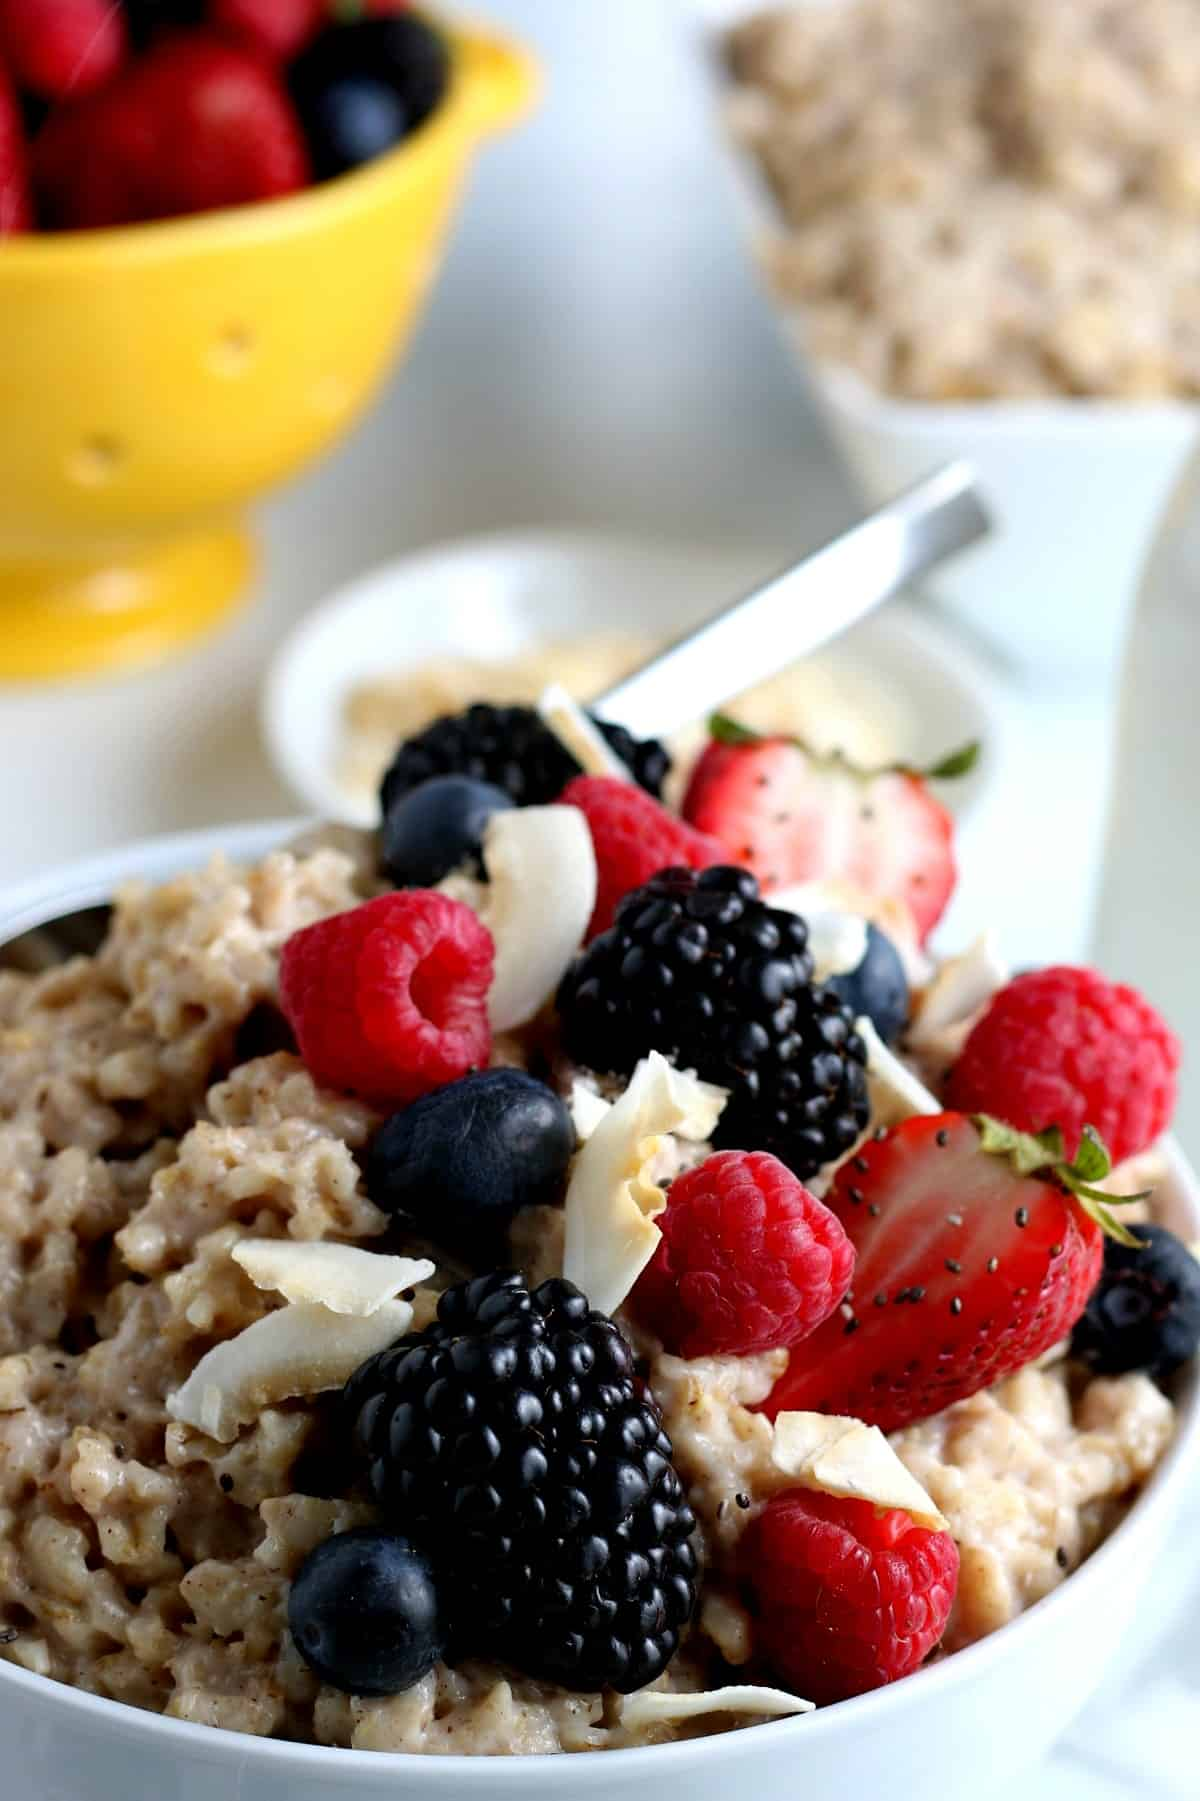 Super closeup photo of oatmeal in a bowl with black and red berries over the top.